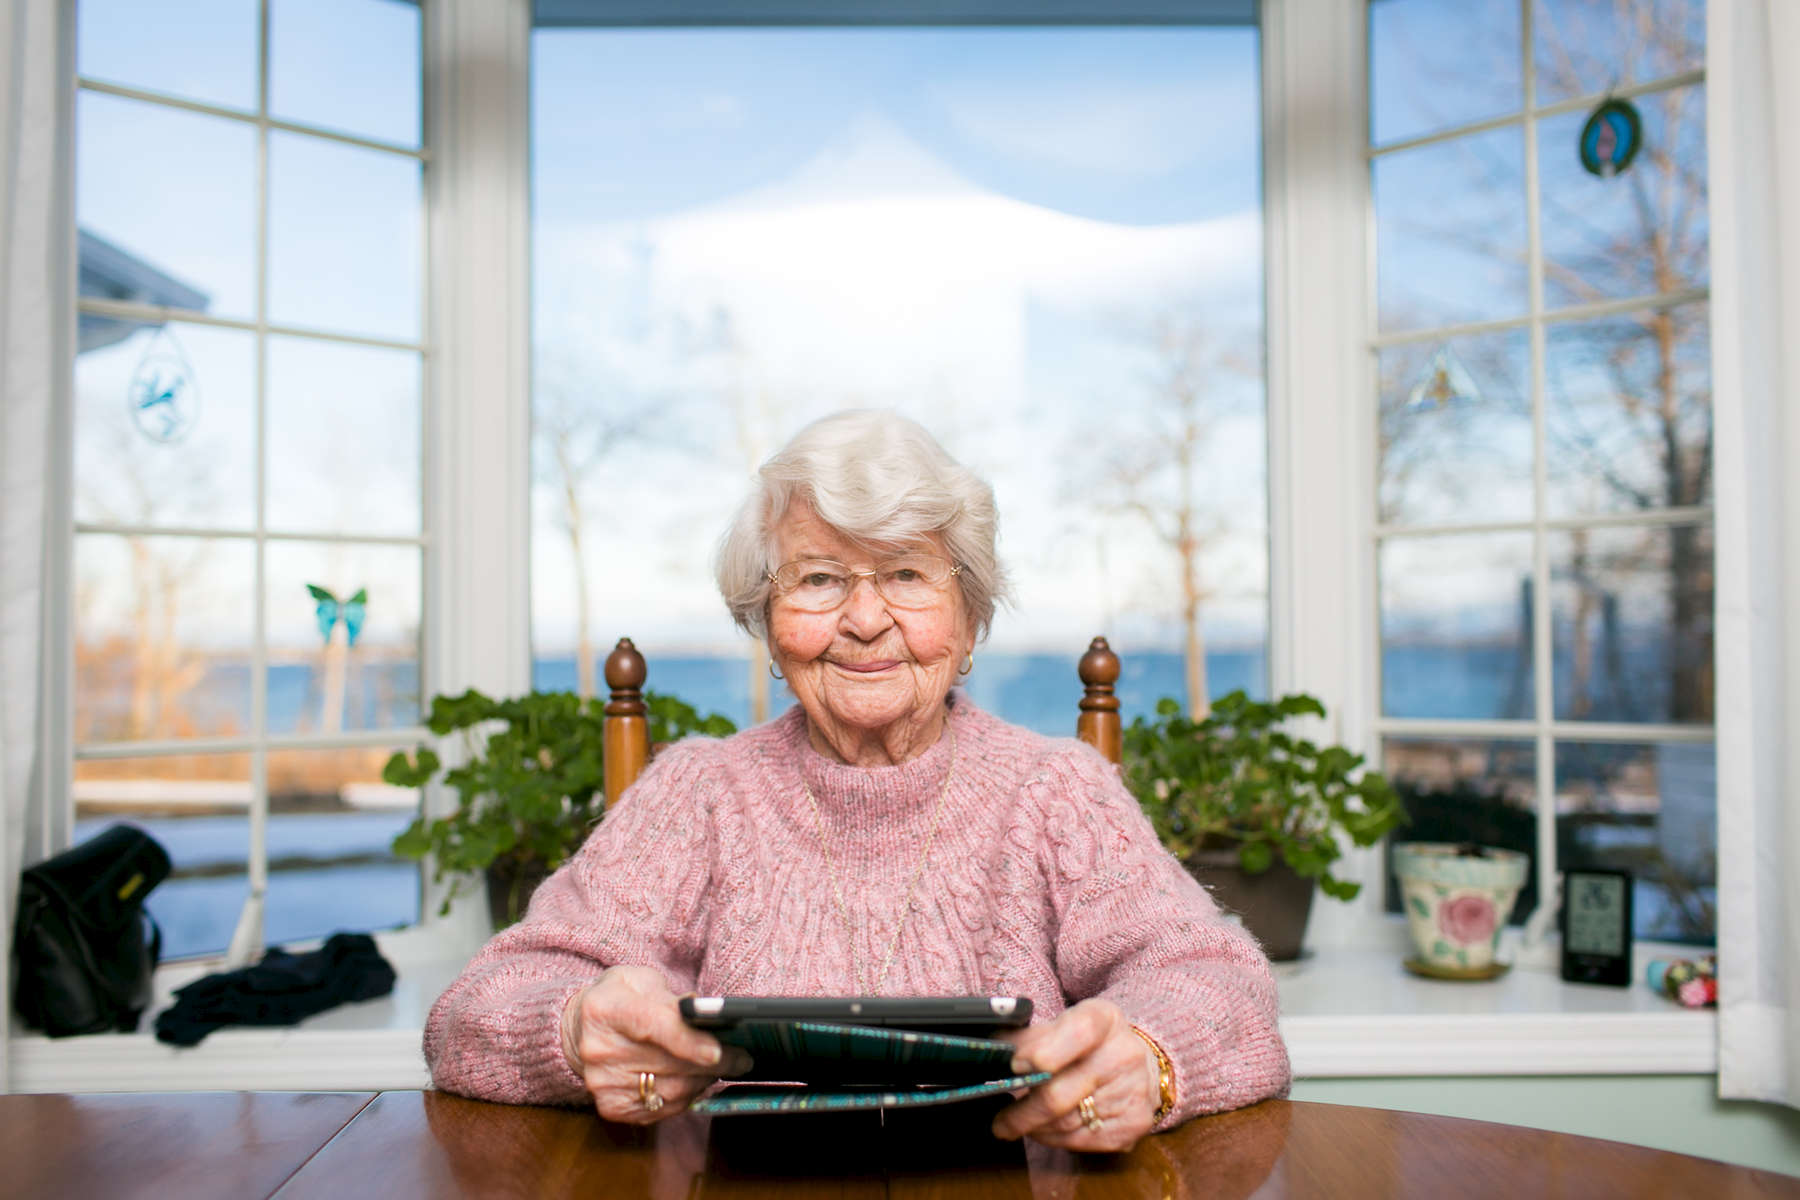 A Senior Planet event member poses for a portrait with her tablet.